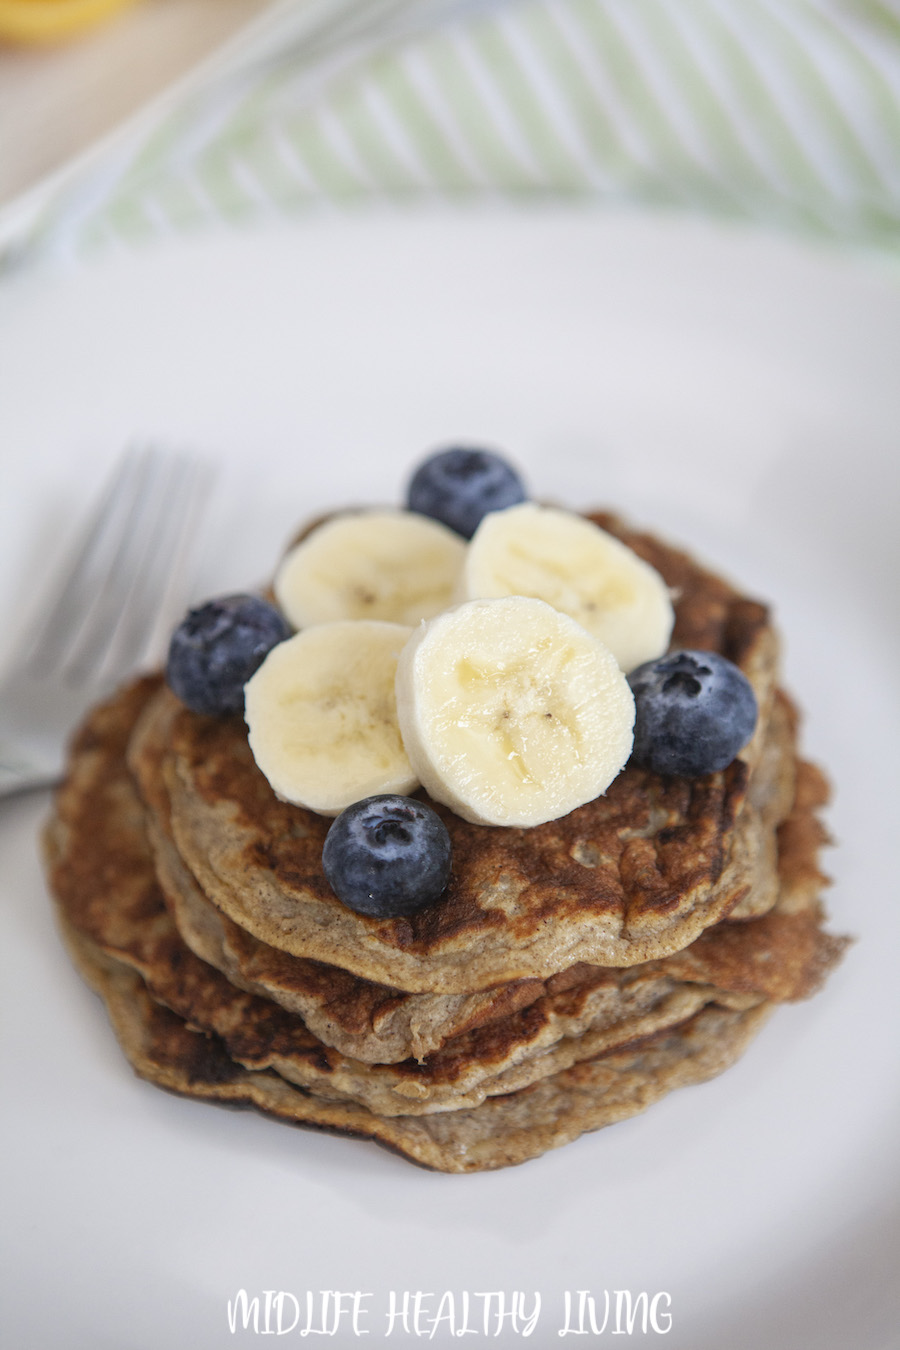 A big stack of the finished ww banana pancakes ready to eat.